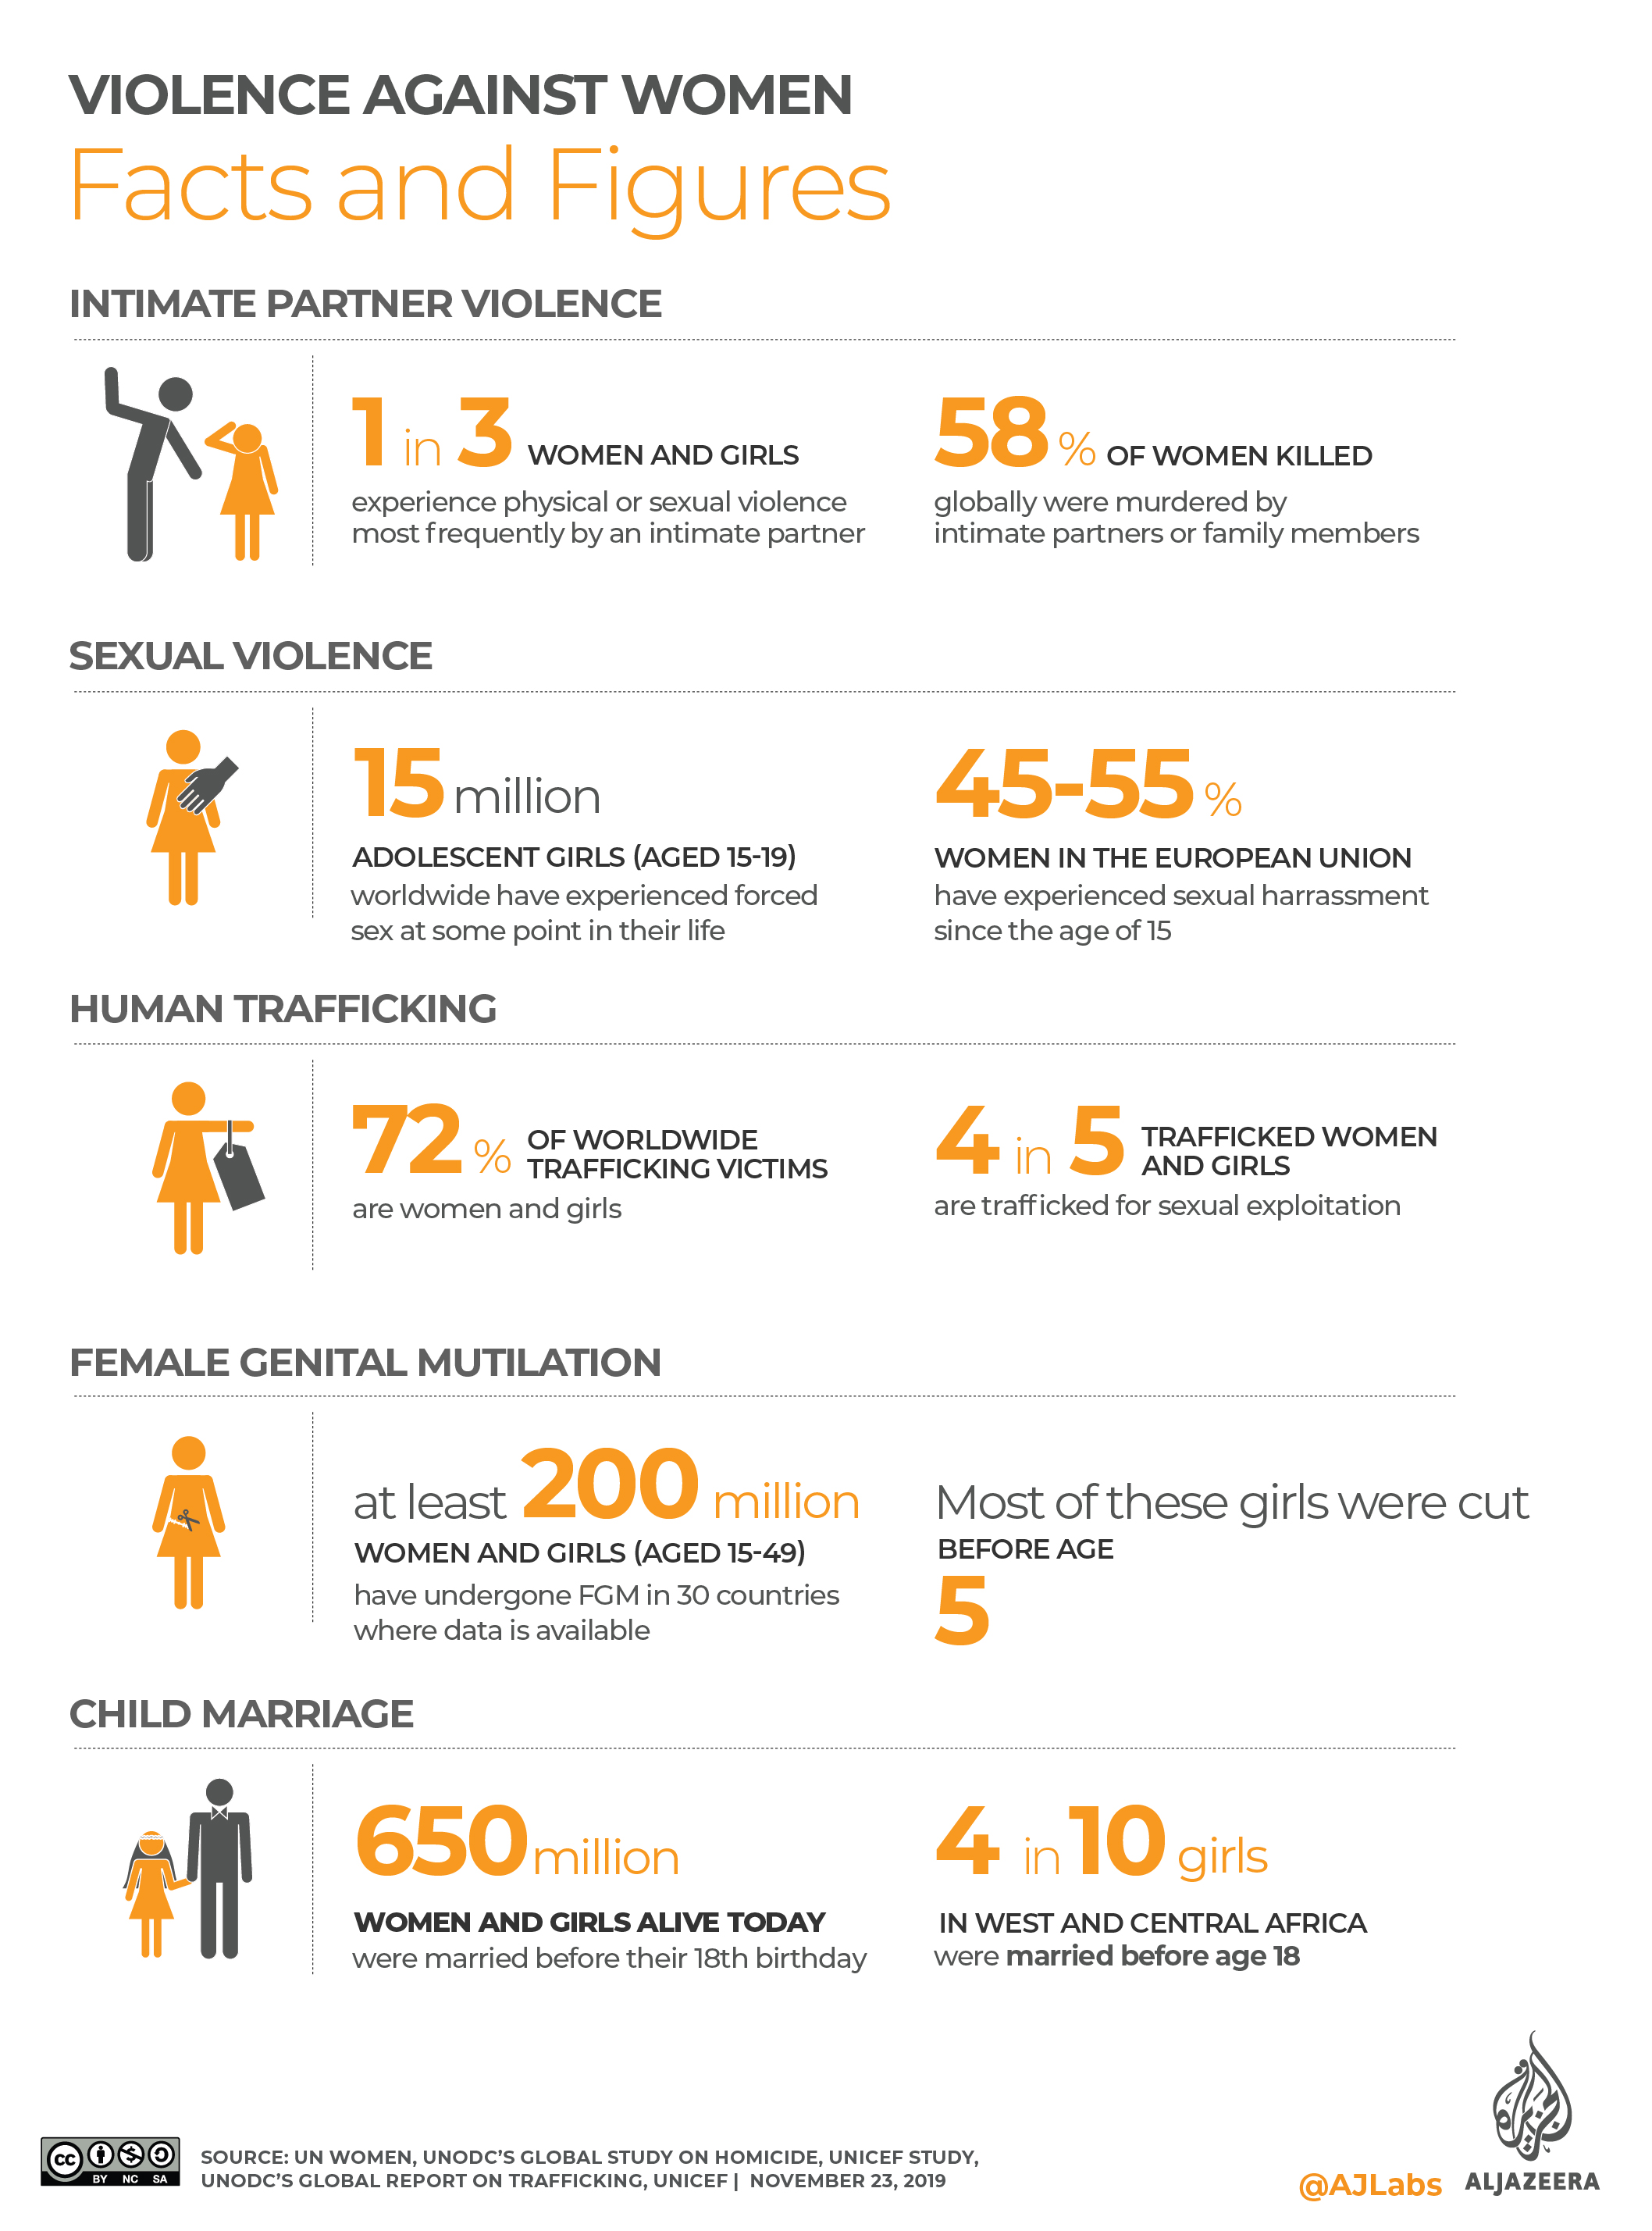 INTERACTIVE: Violence against women